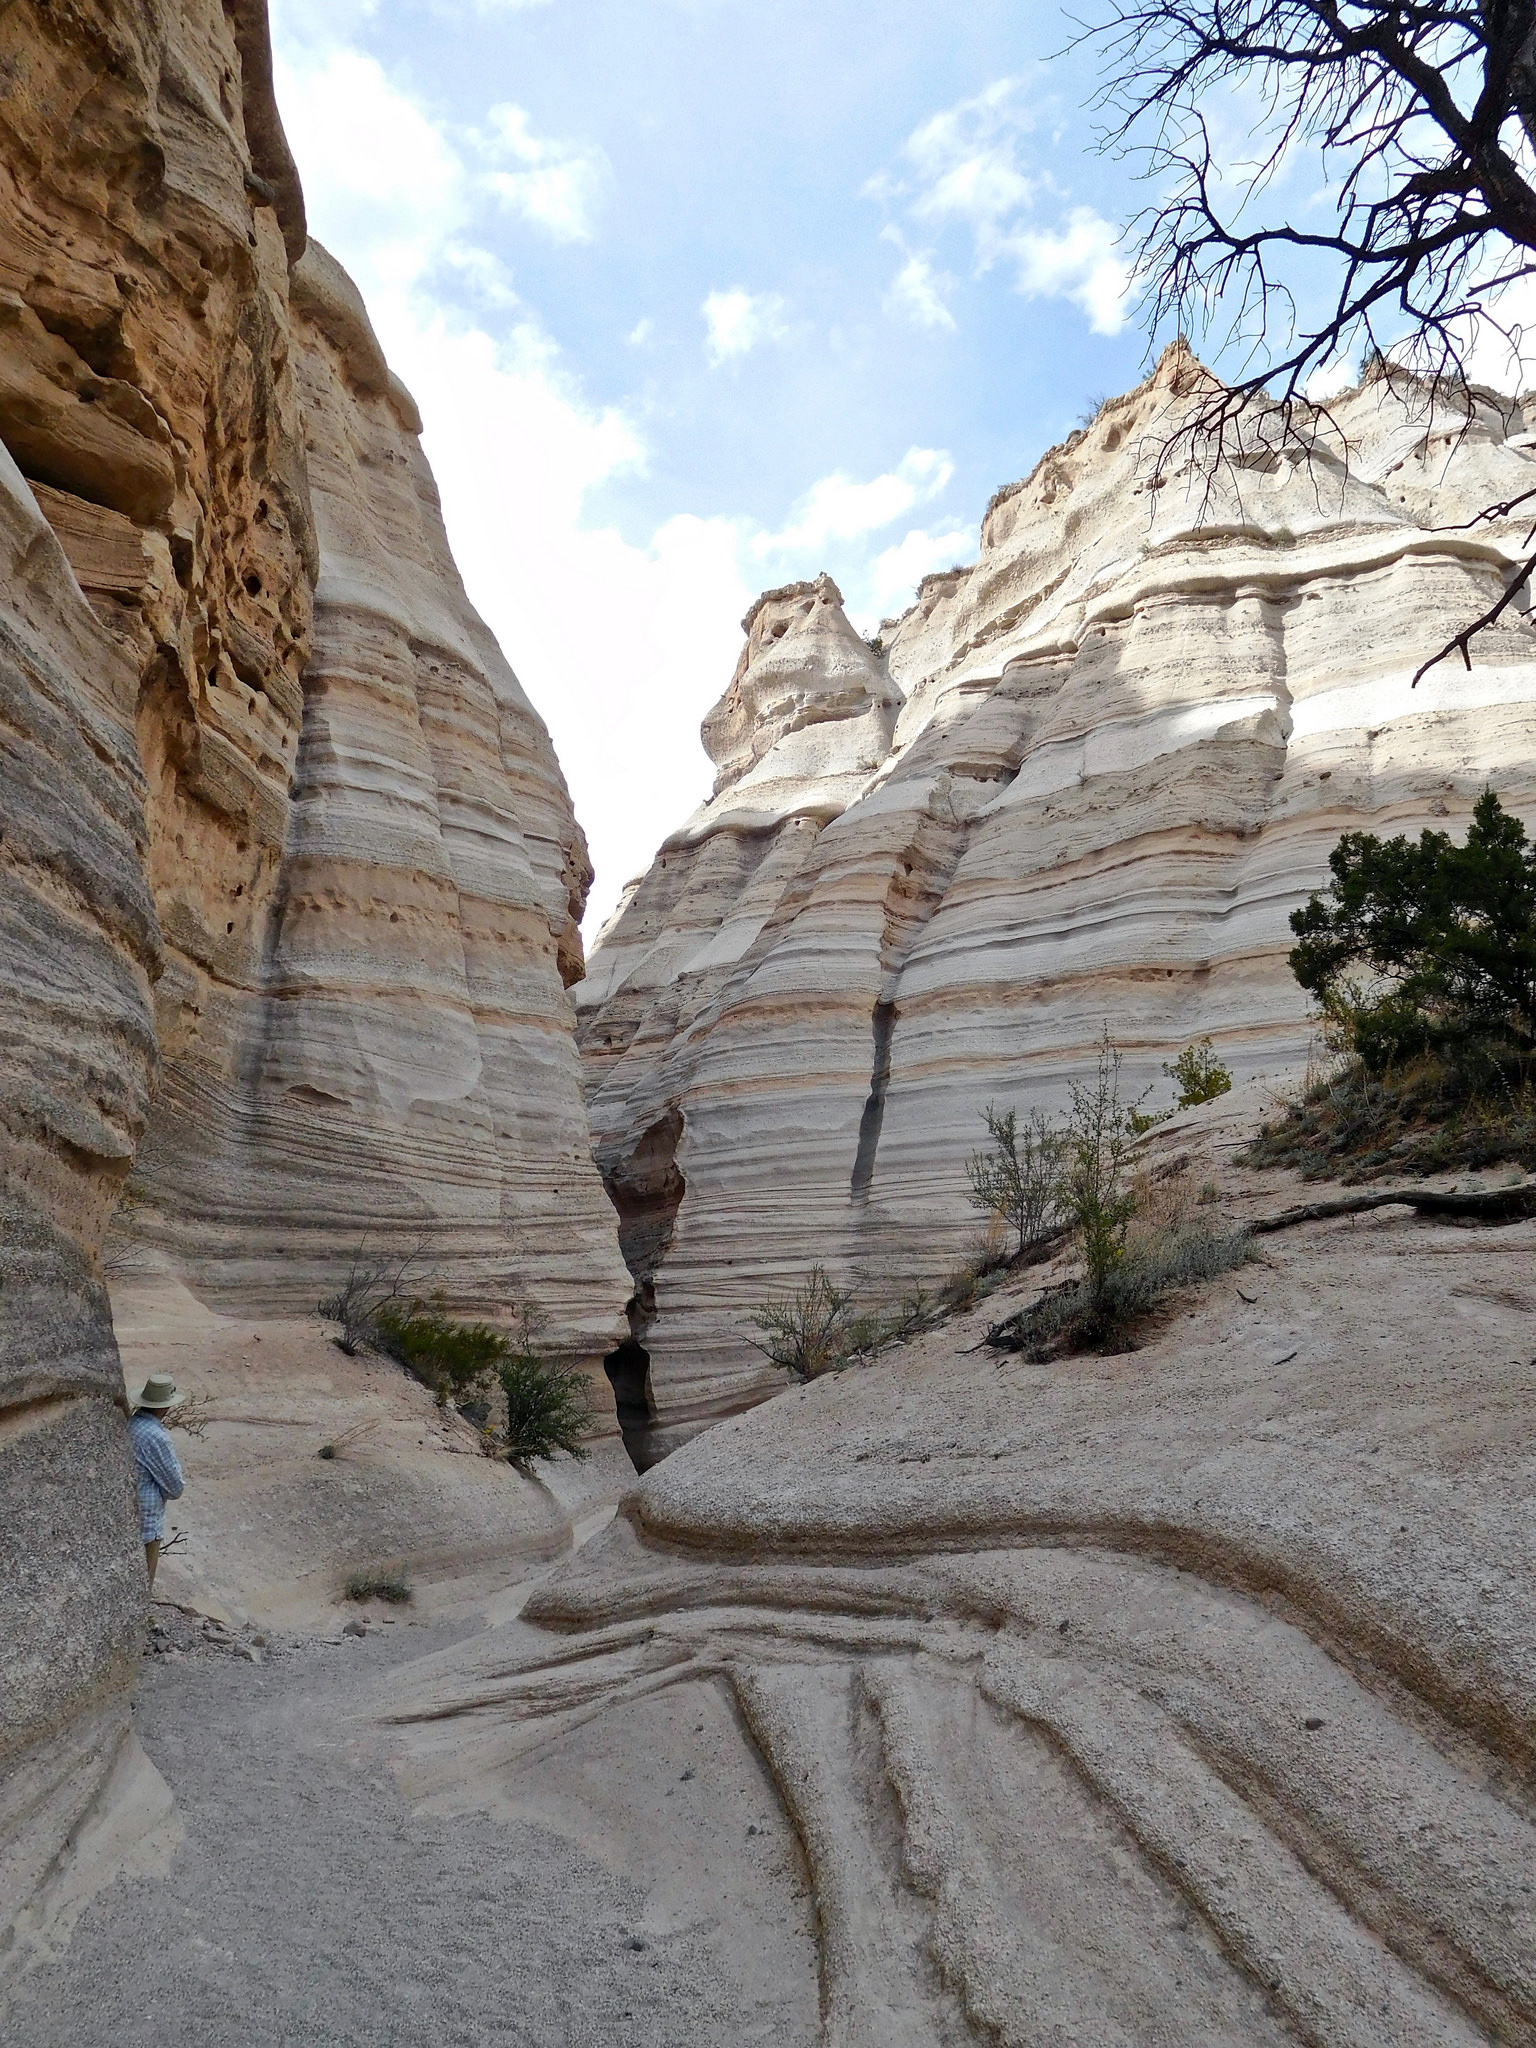 Slot Canyon Trail, Kasha Katuwe Tent Rocks National Monument